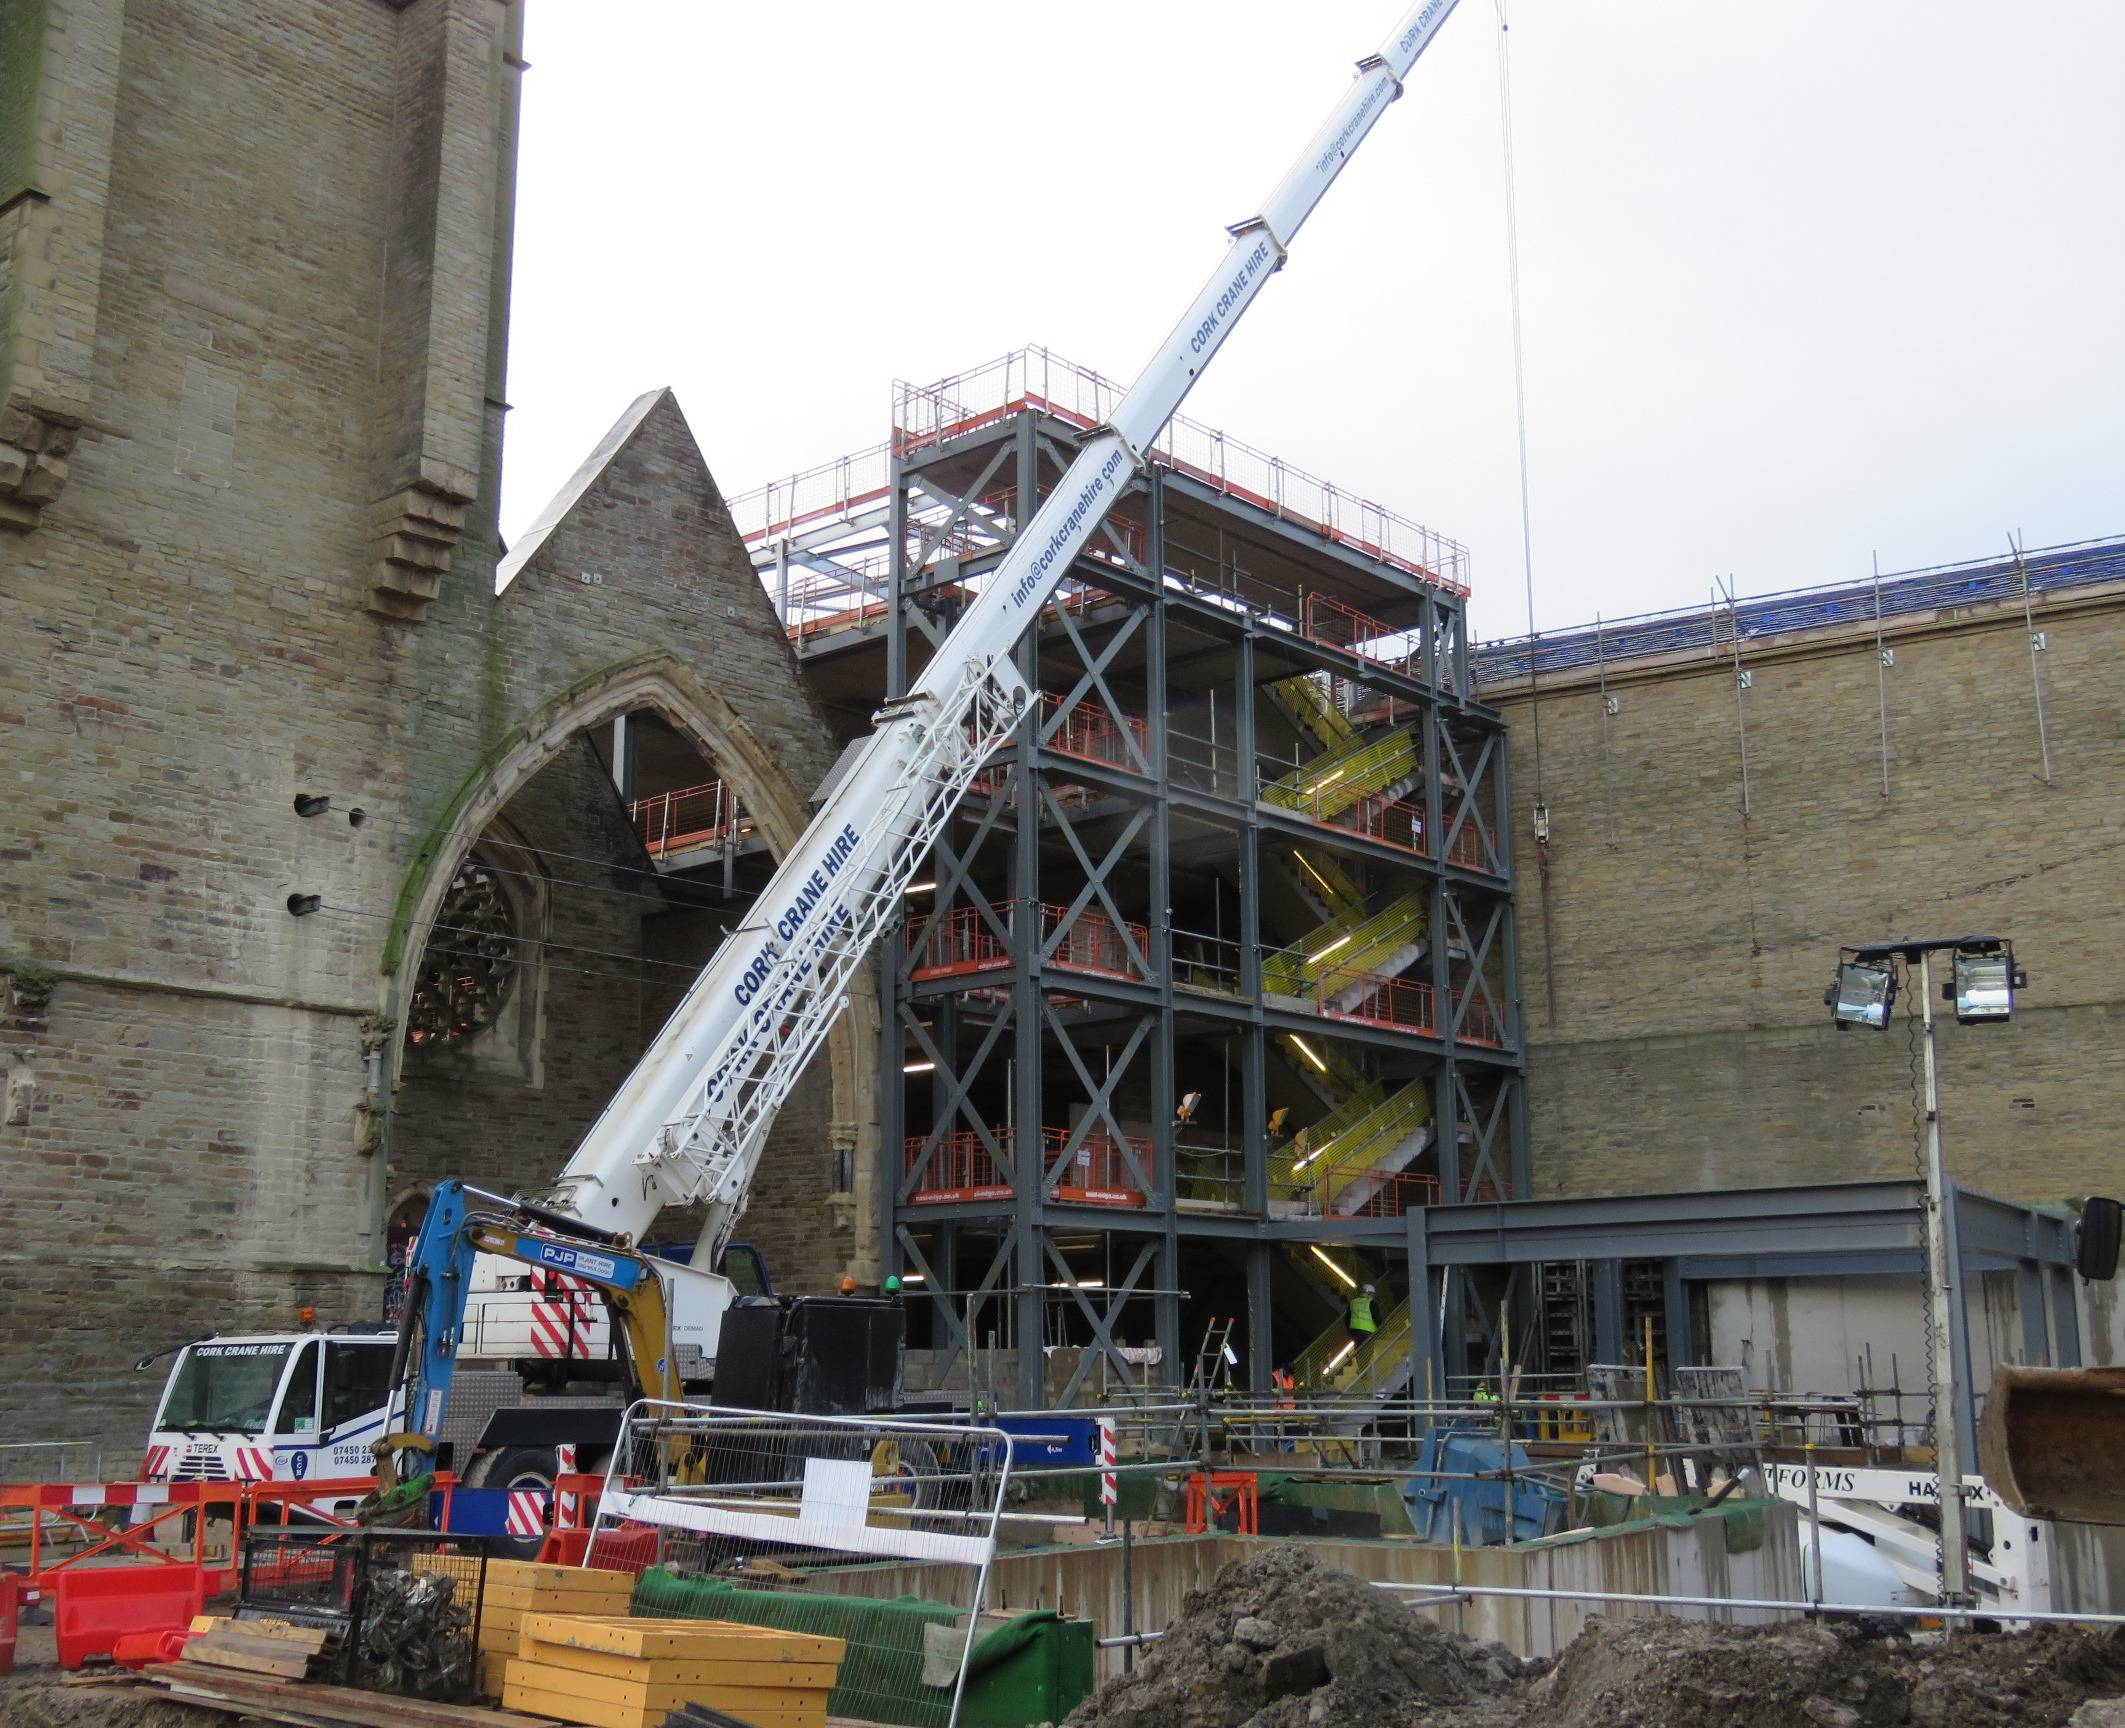 Library steelwork - image 2